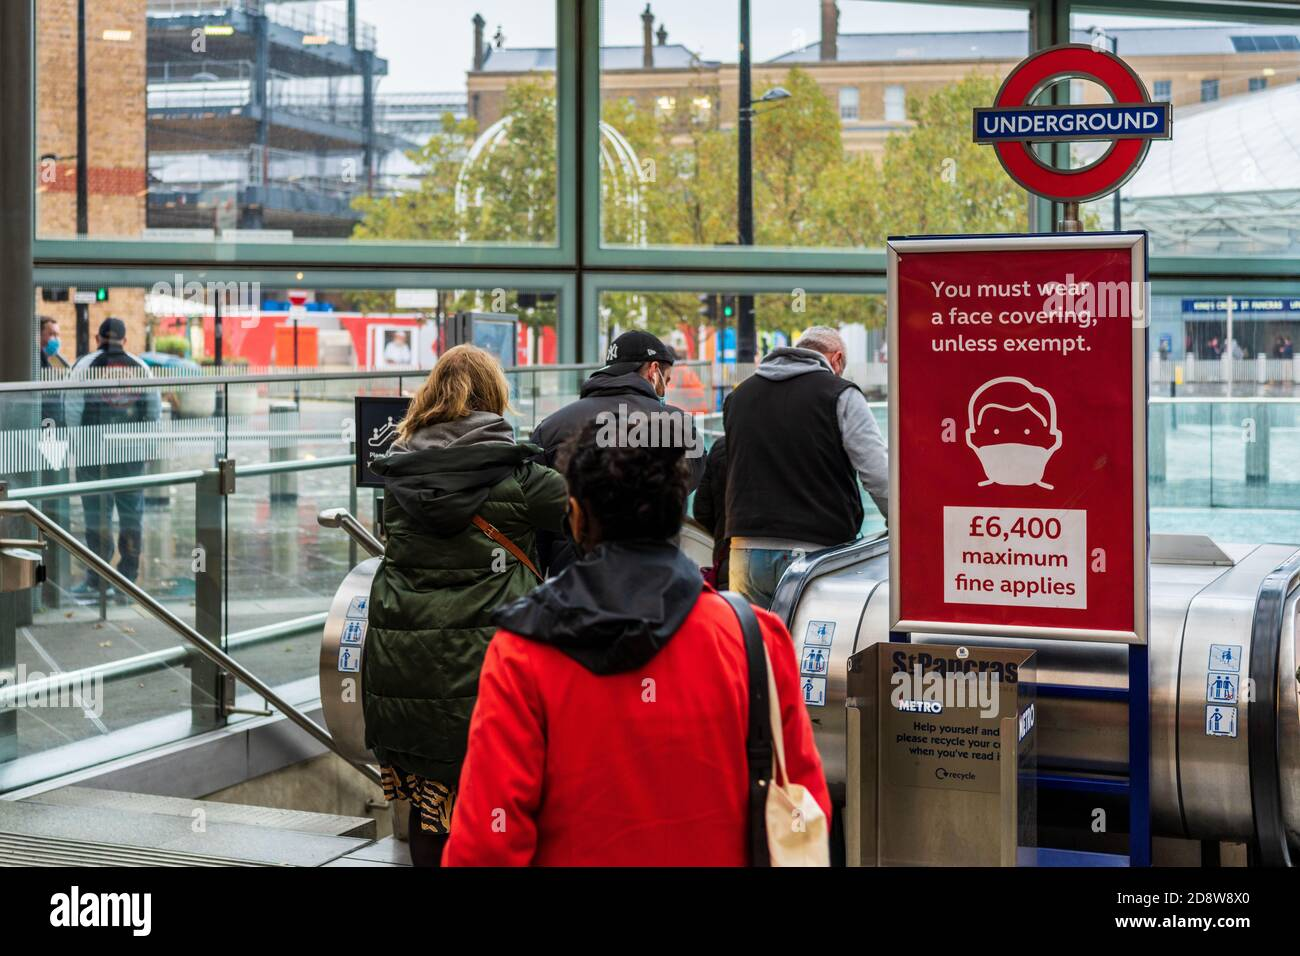 London Transport Mask Enforcement - up to £6500 fines for not wearing a face covering on the London Underground and Railway Stations. Stock Photo